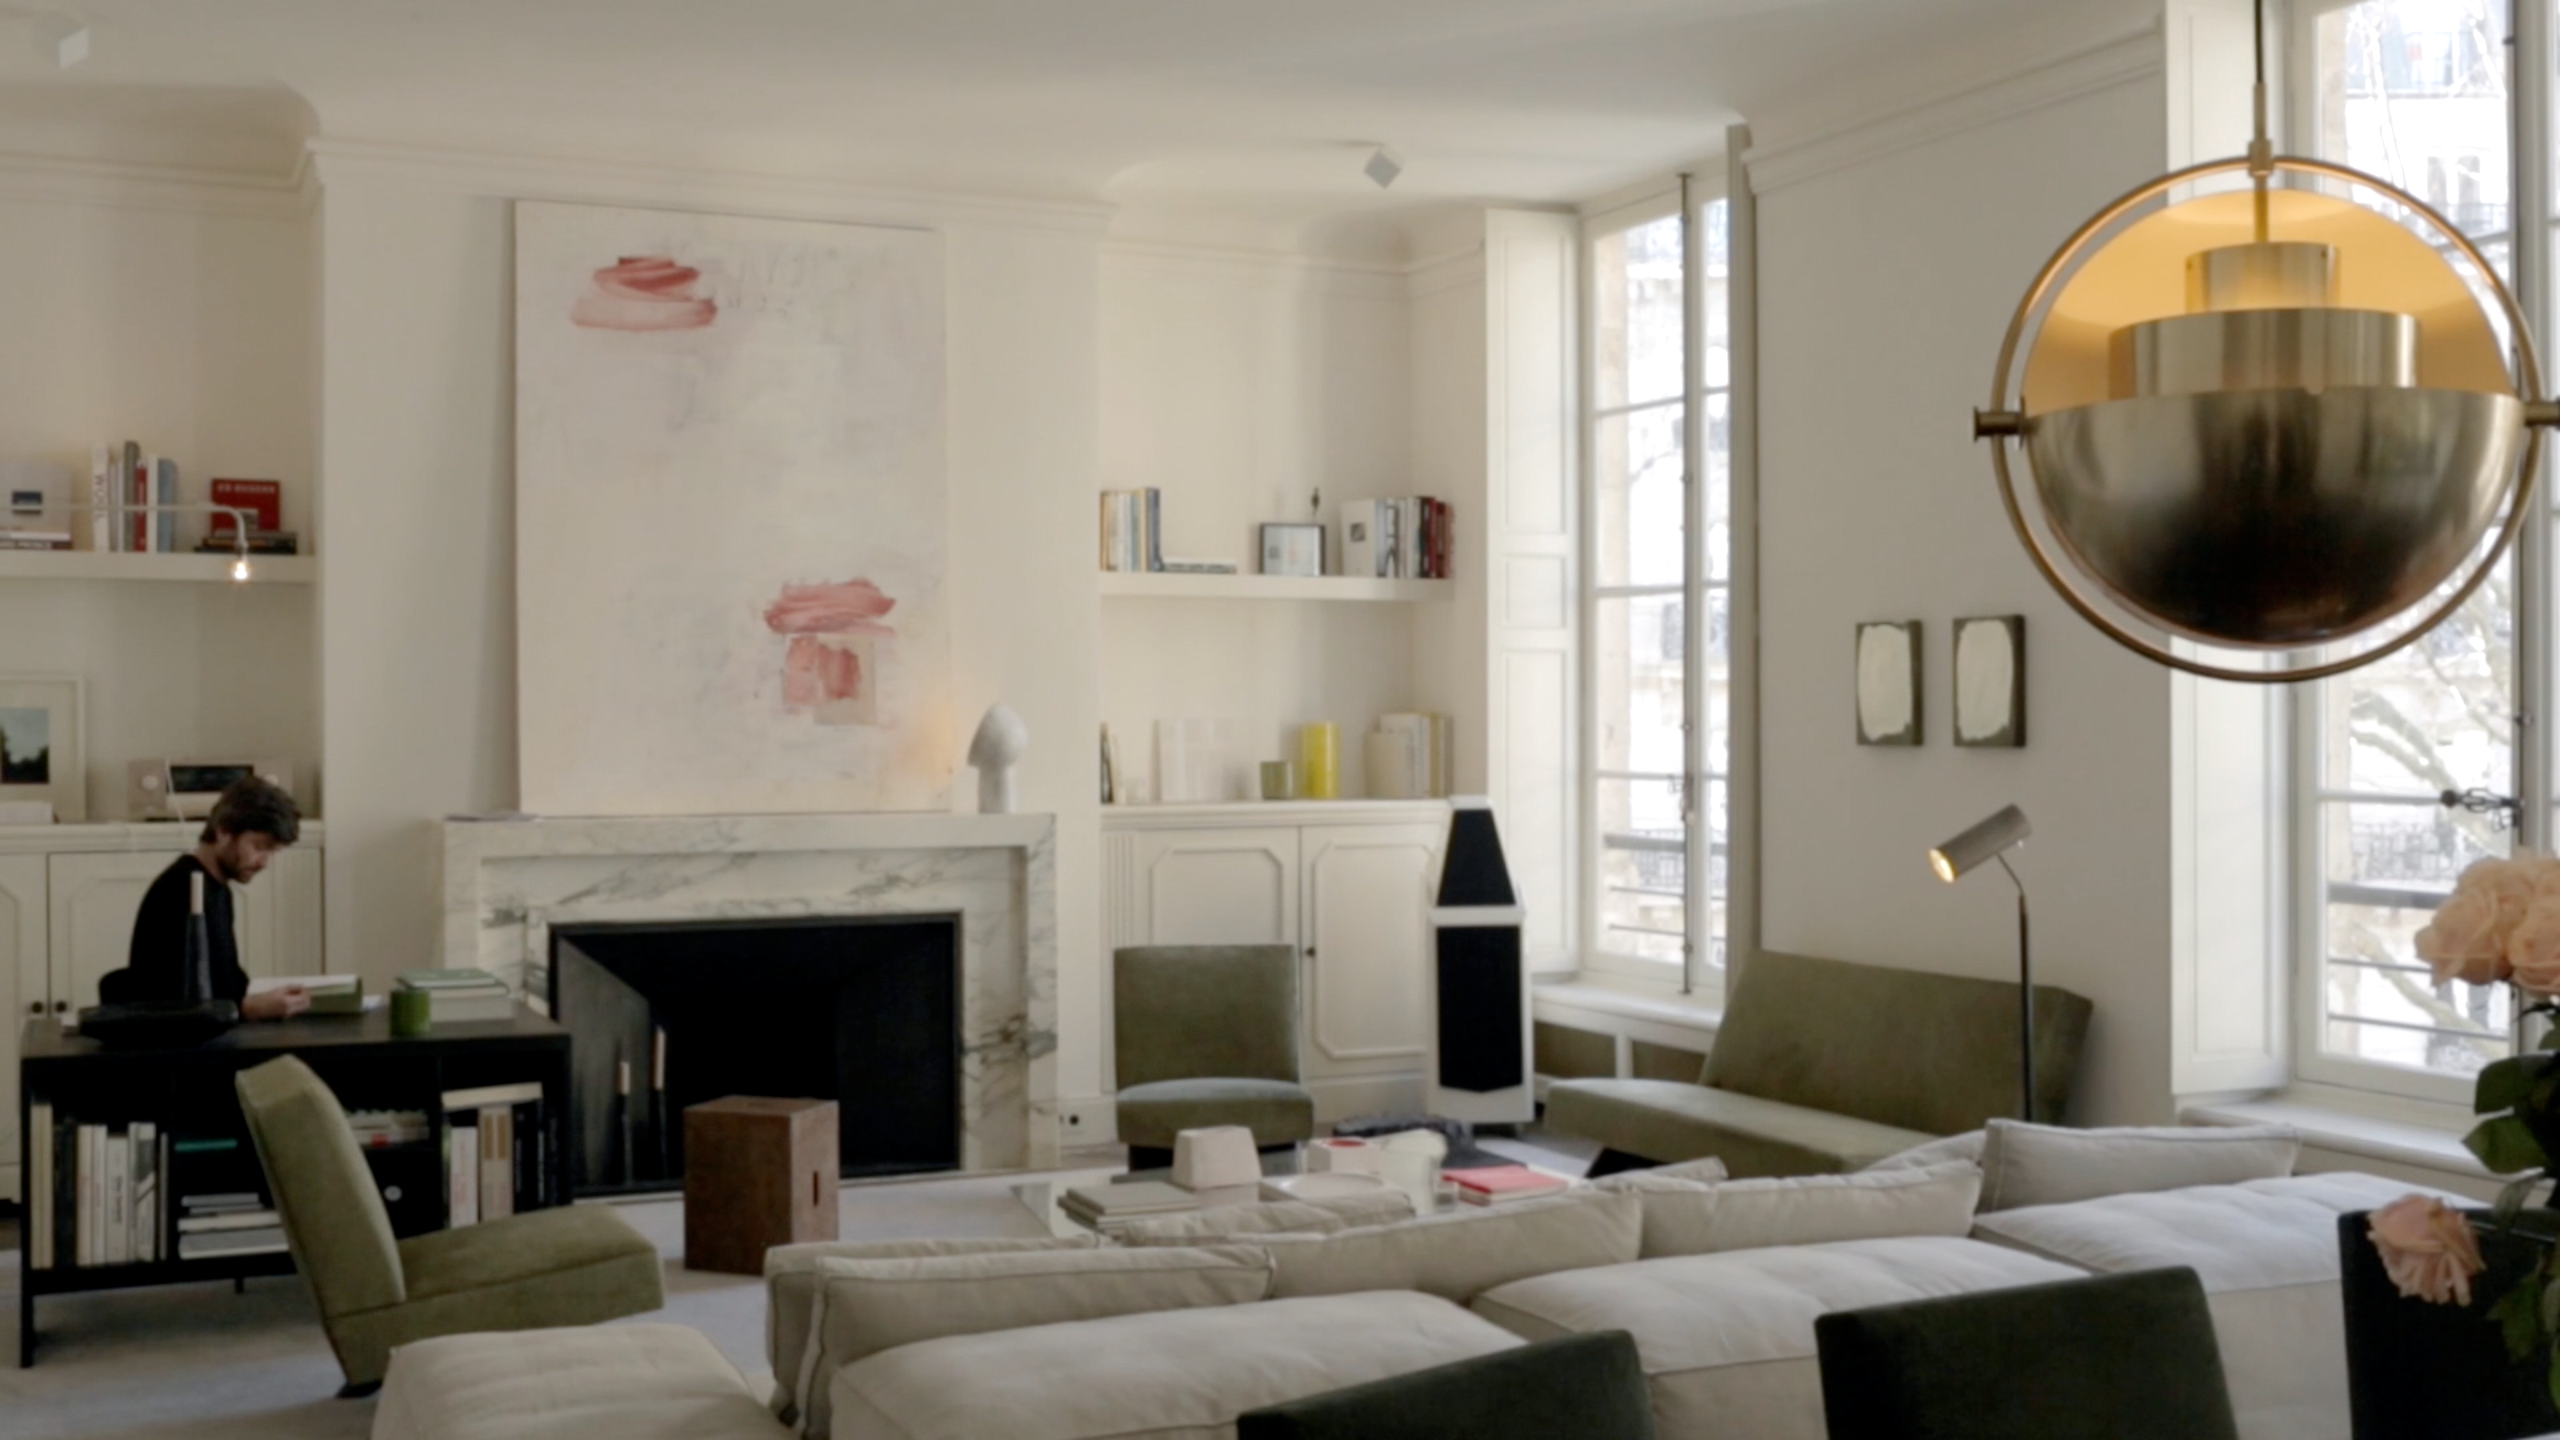 Step Inside The Parisian Home Of Jean Touitou, A.P.C